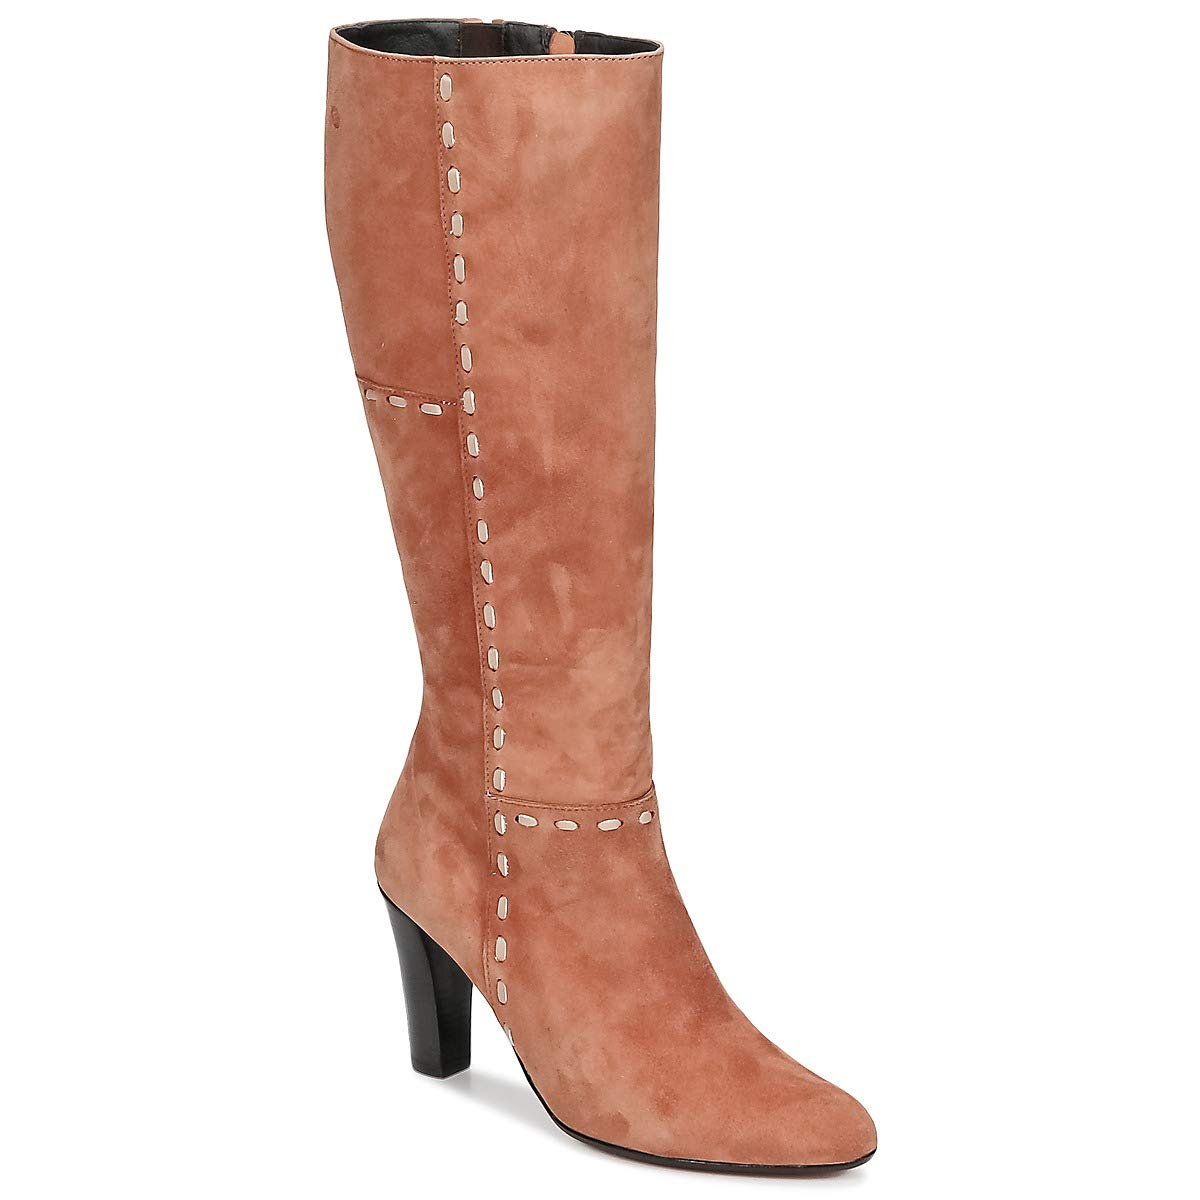 Betty London HYLANA Stiefel Damen Camel Klassische Stiefel